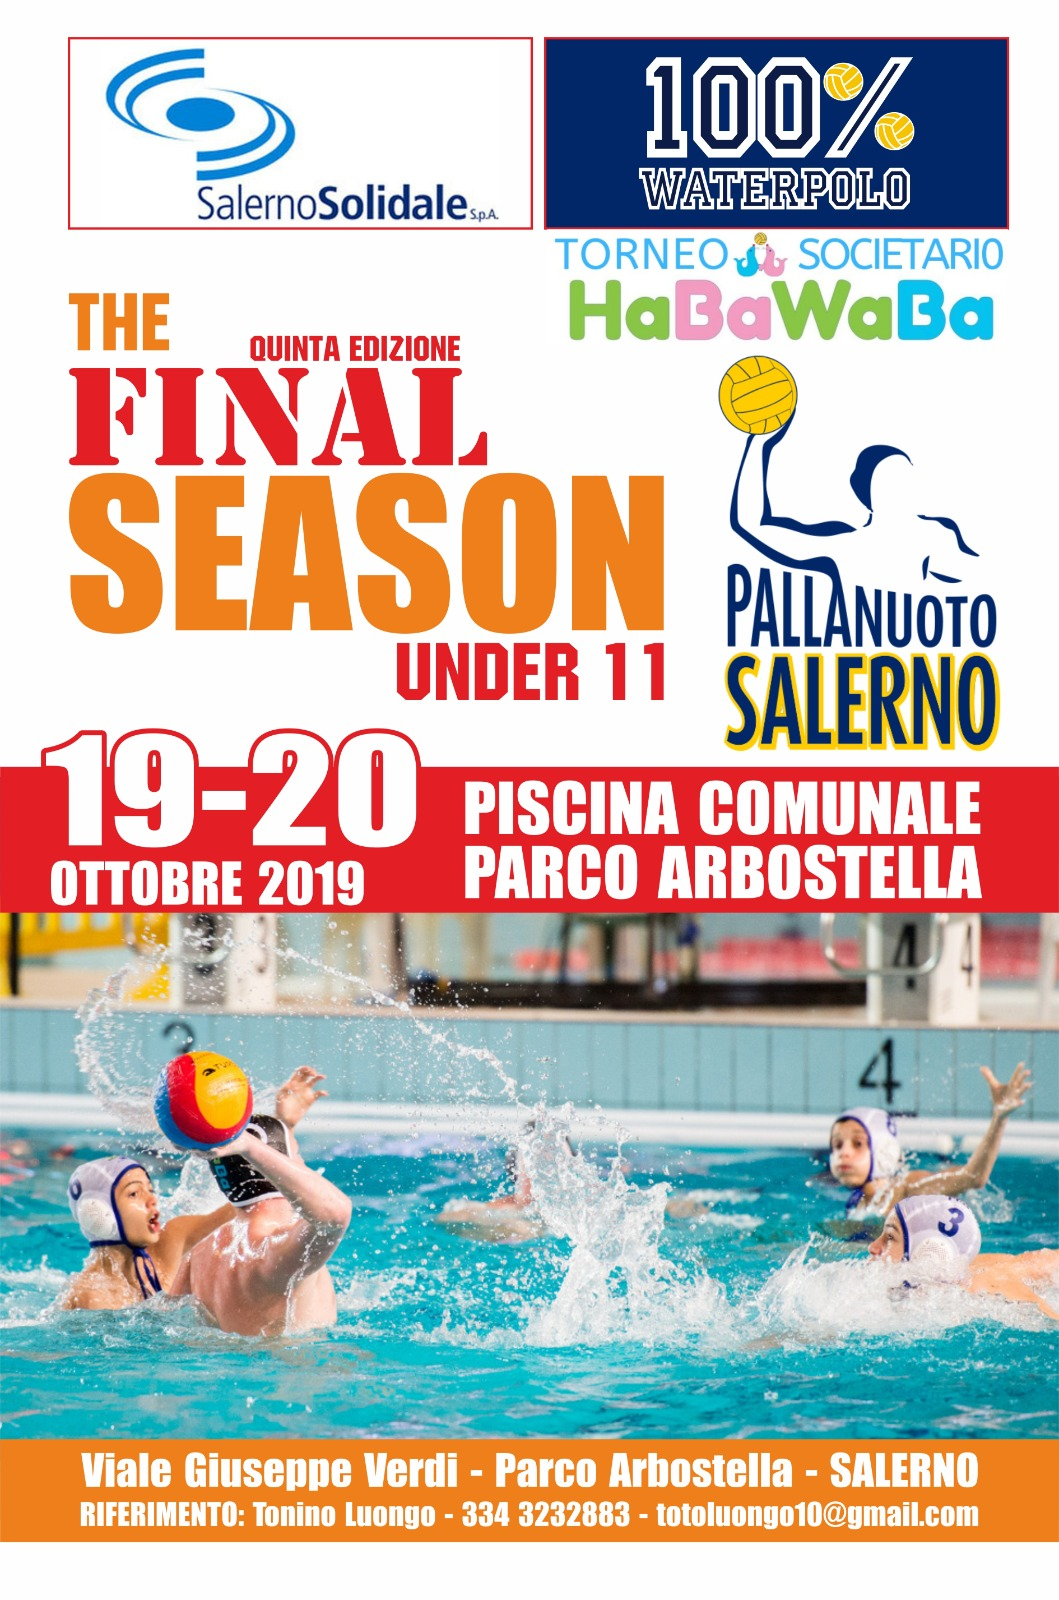 Torneo societario HaBaWaBa – Final Season 2019